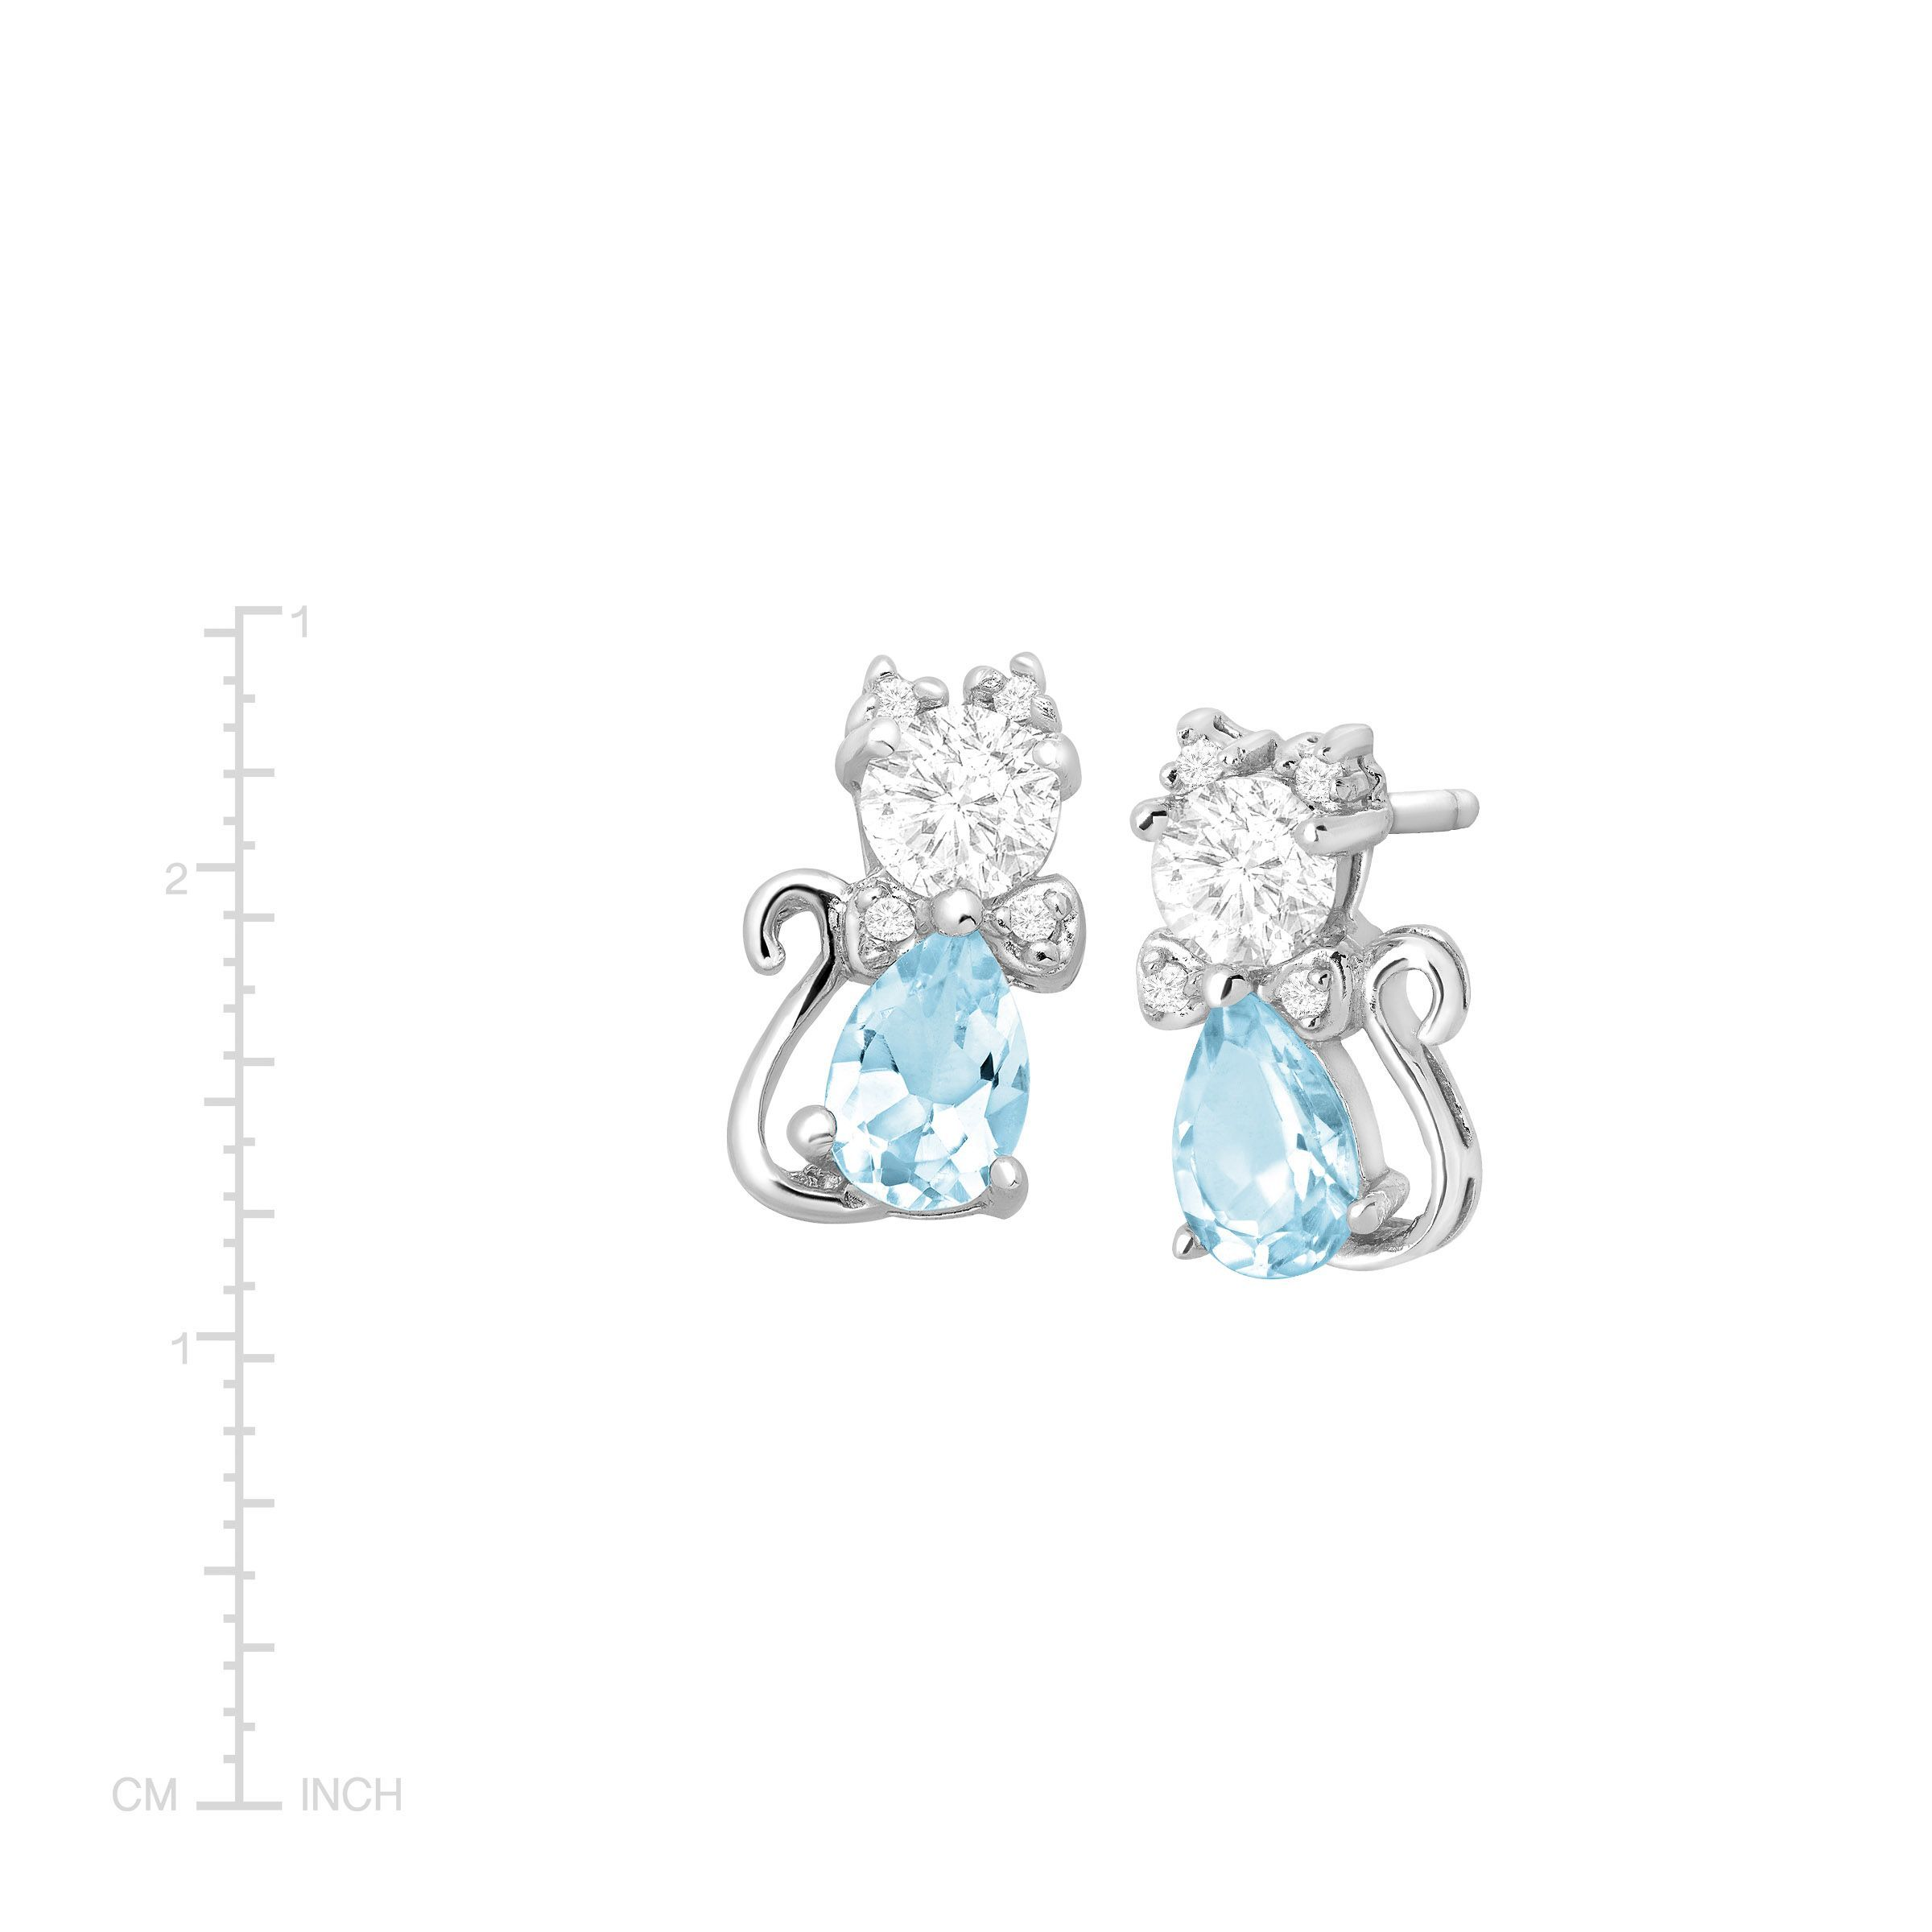 2 Ct Natural Sky Blue Topaz Cubic Zirconia Cat Stud Earrings Sterling Silver